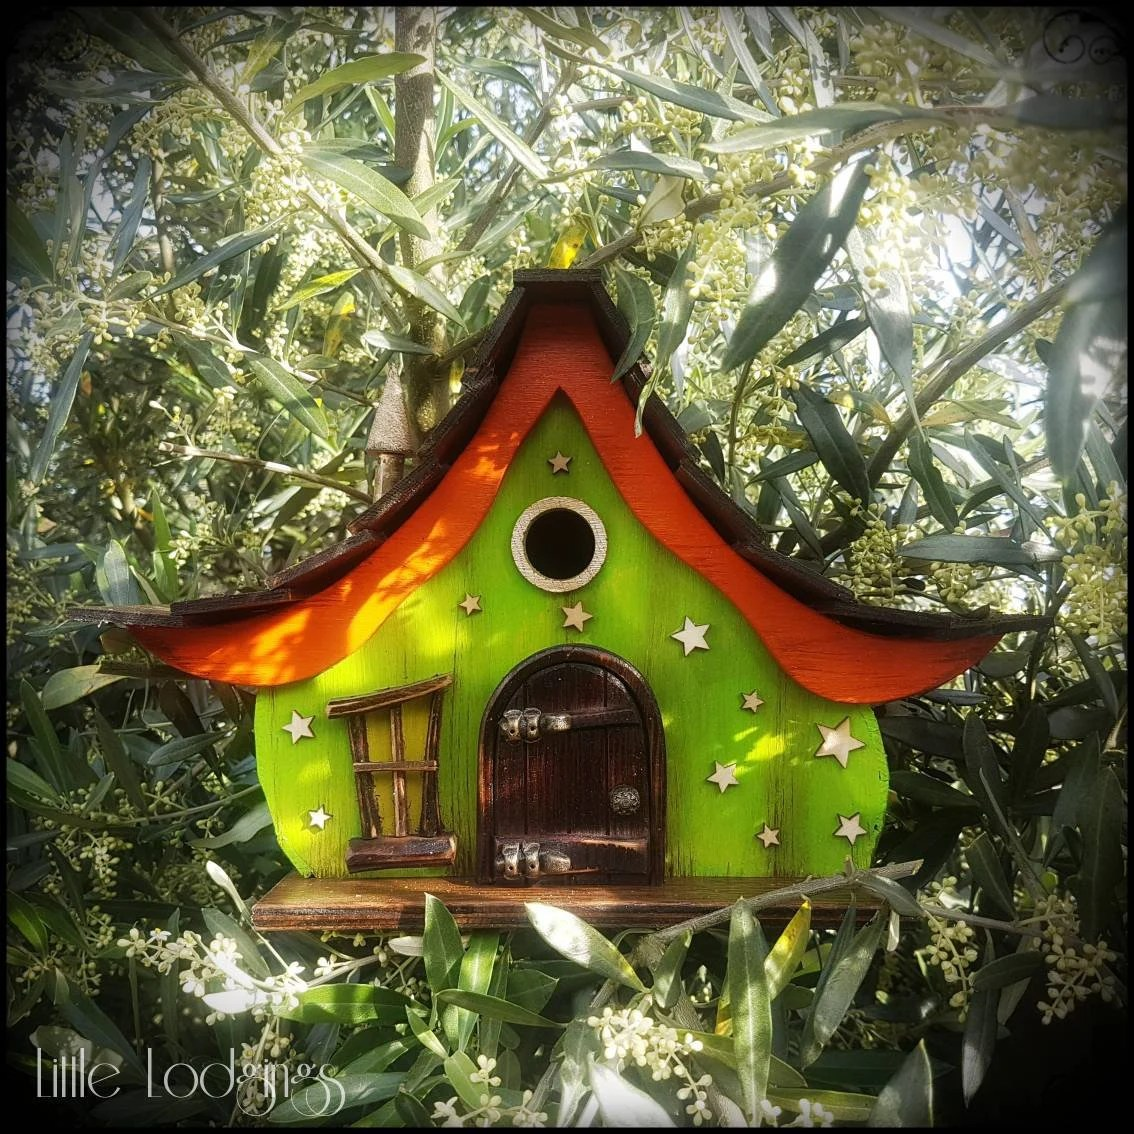 Maisons Du Monde Devoluciones The Goblin King Birdhouse Birdhouses Handmade Garden Art Bird Houses Birdhouses